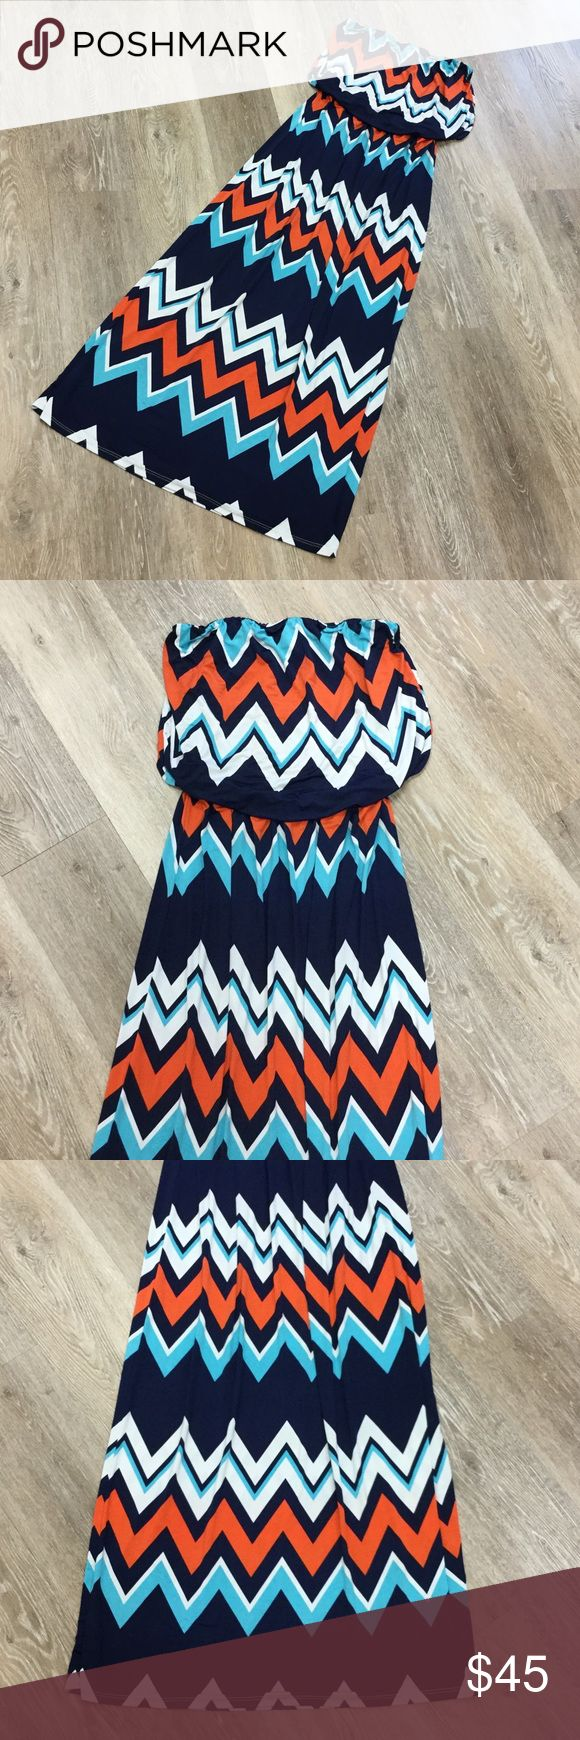 Women's Blue and Orange Chevron Strapless Dress Women's size Medium orange and blue chevron dress. No tags. Bought from a Boutique. Excellent condition.   👠Unless otherwise stated NWT, all items are from my PERSONAL closet and GENTLY used. Please do not expect UC to look NWT. 👠  💋Please ask any questions you may have BEFORE purchase.💋  ❤️Bundle together for the best deal!! ❤️  ❗️PLEASE USE THE OFFER BUTTON TO SUBMIT OFFERS.❗️  🎀As always HAPPY POSHING. 🎀 Dresses Strapless